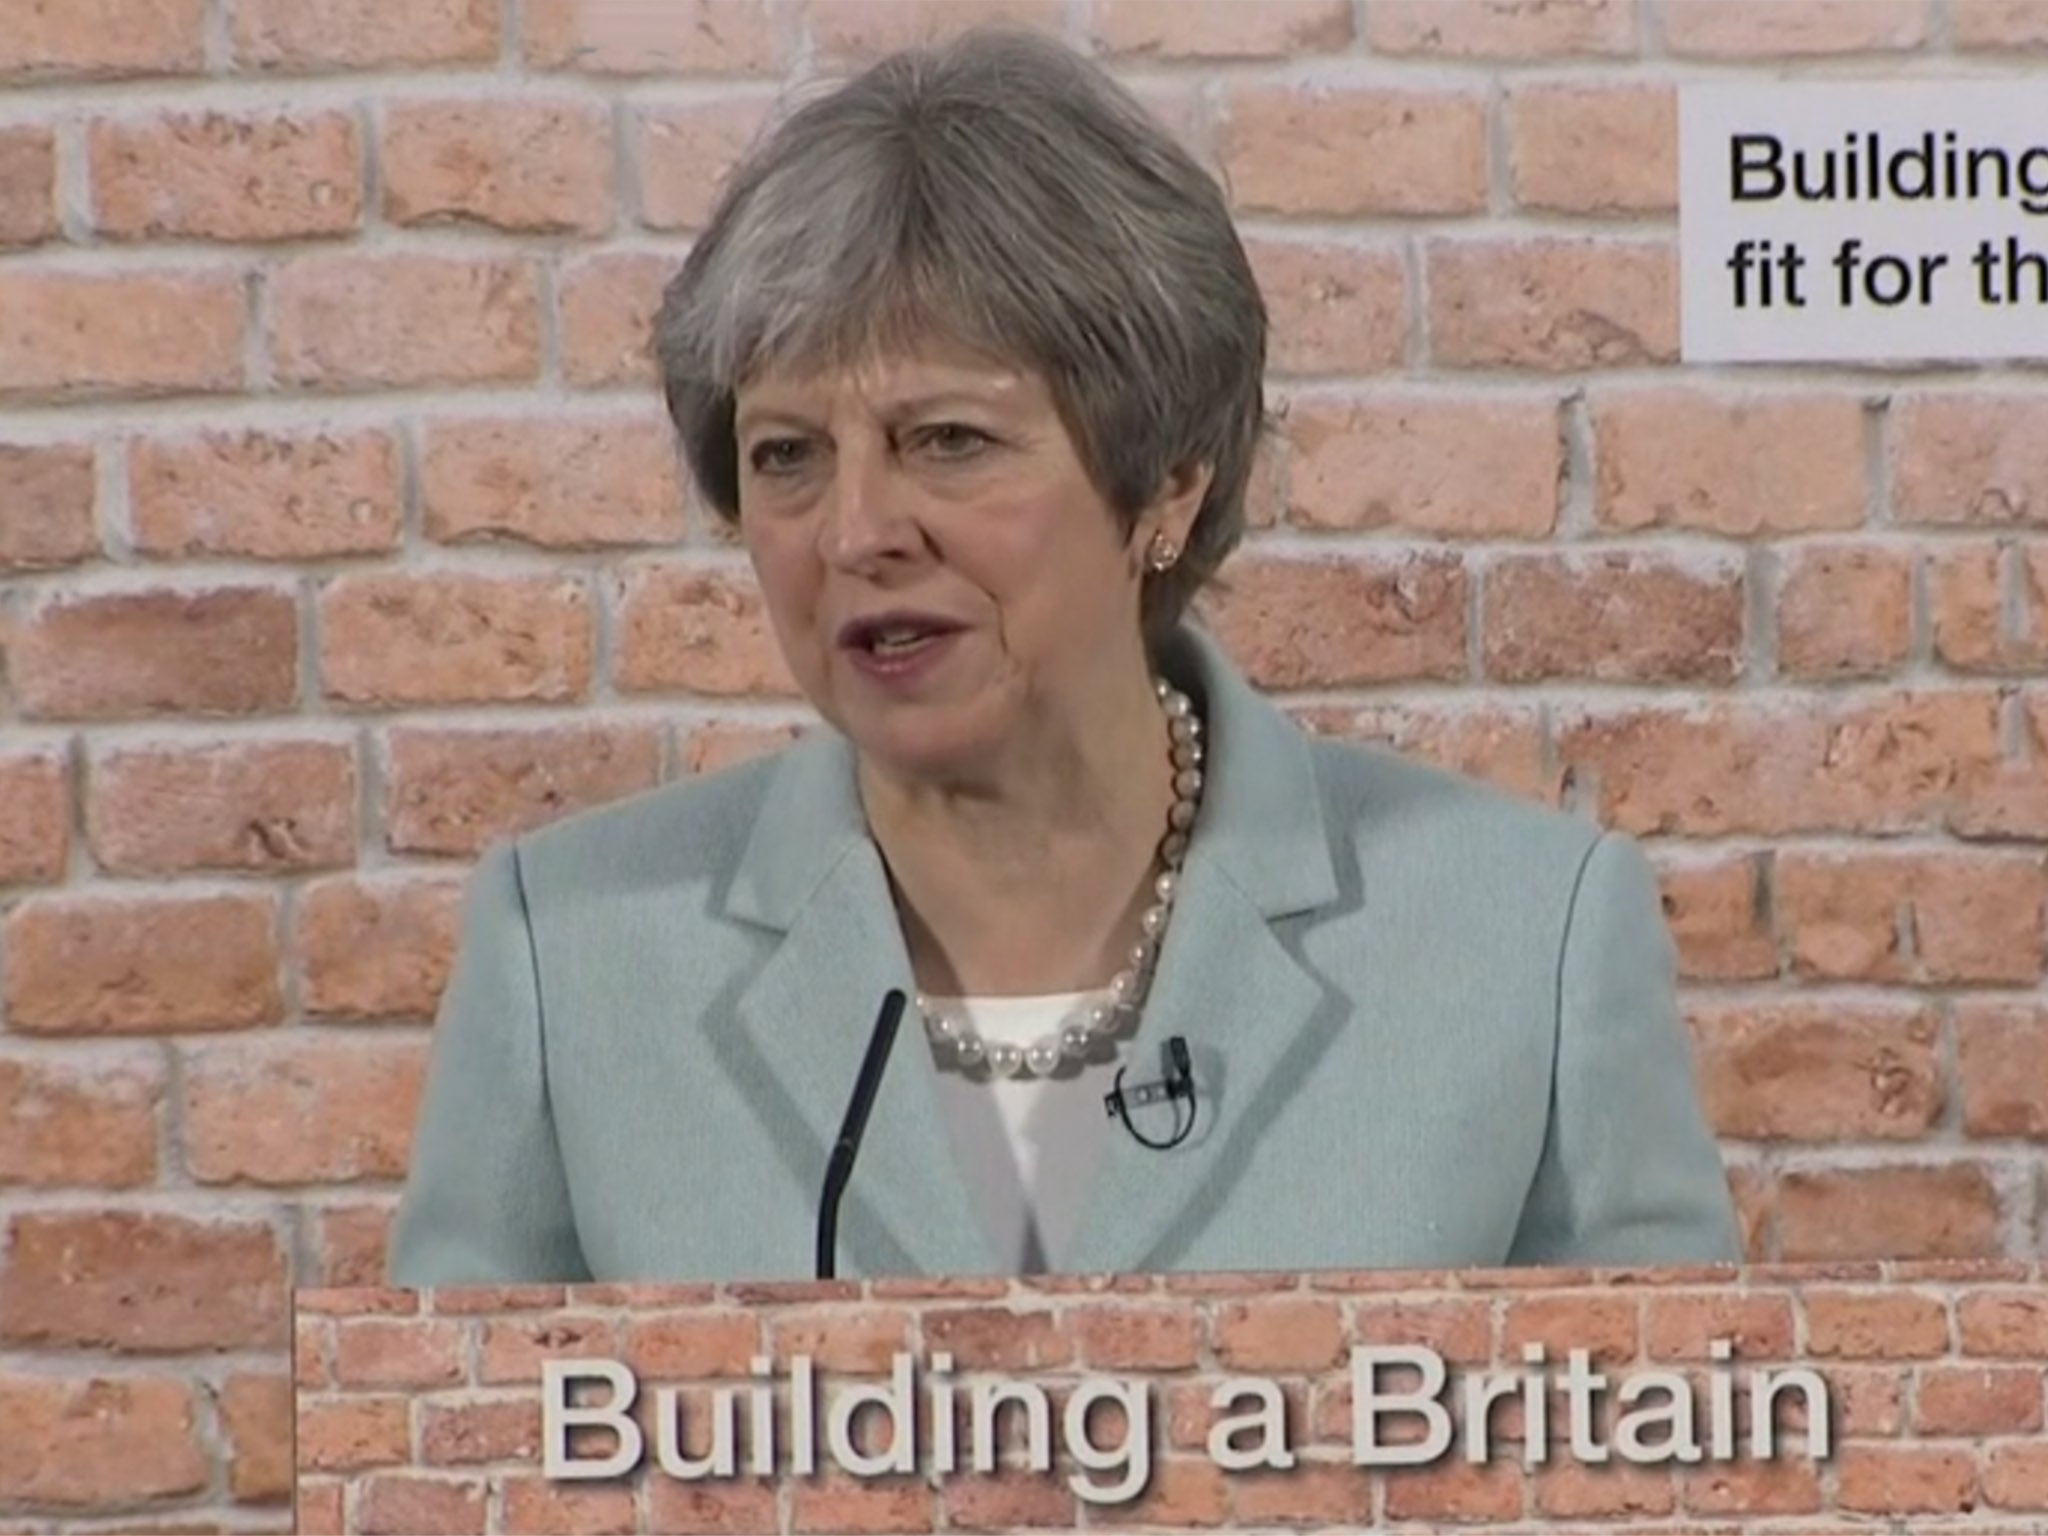 Theresa May admits homelessness is source of 'national shame' in major speech on tackling housing crisis